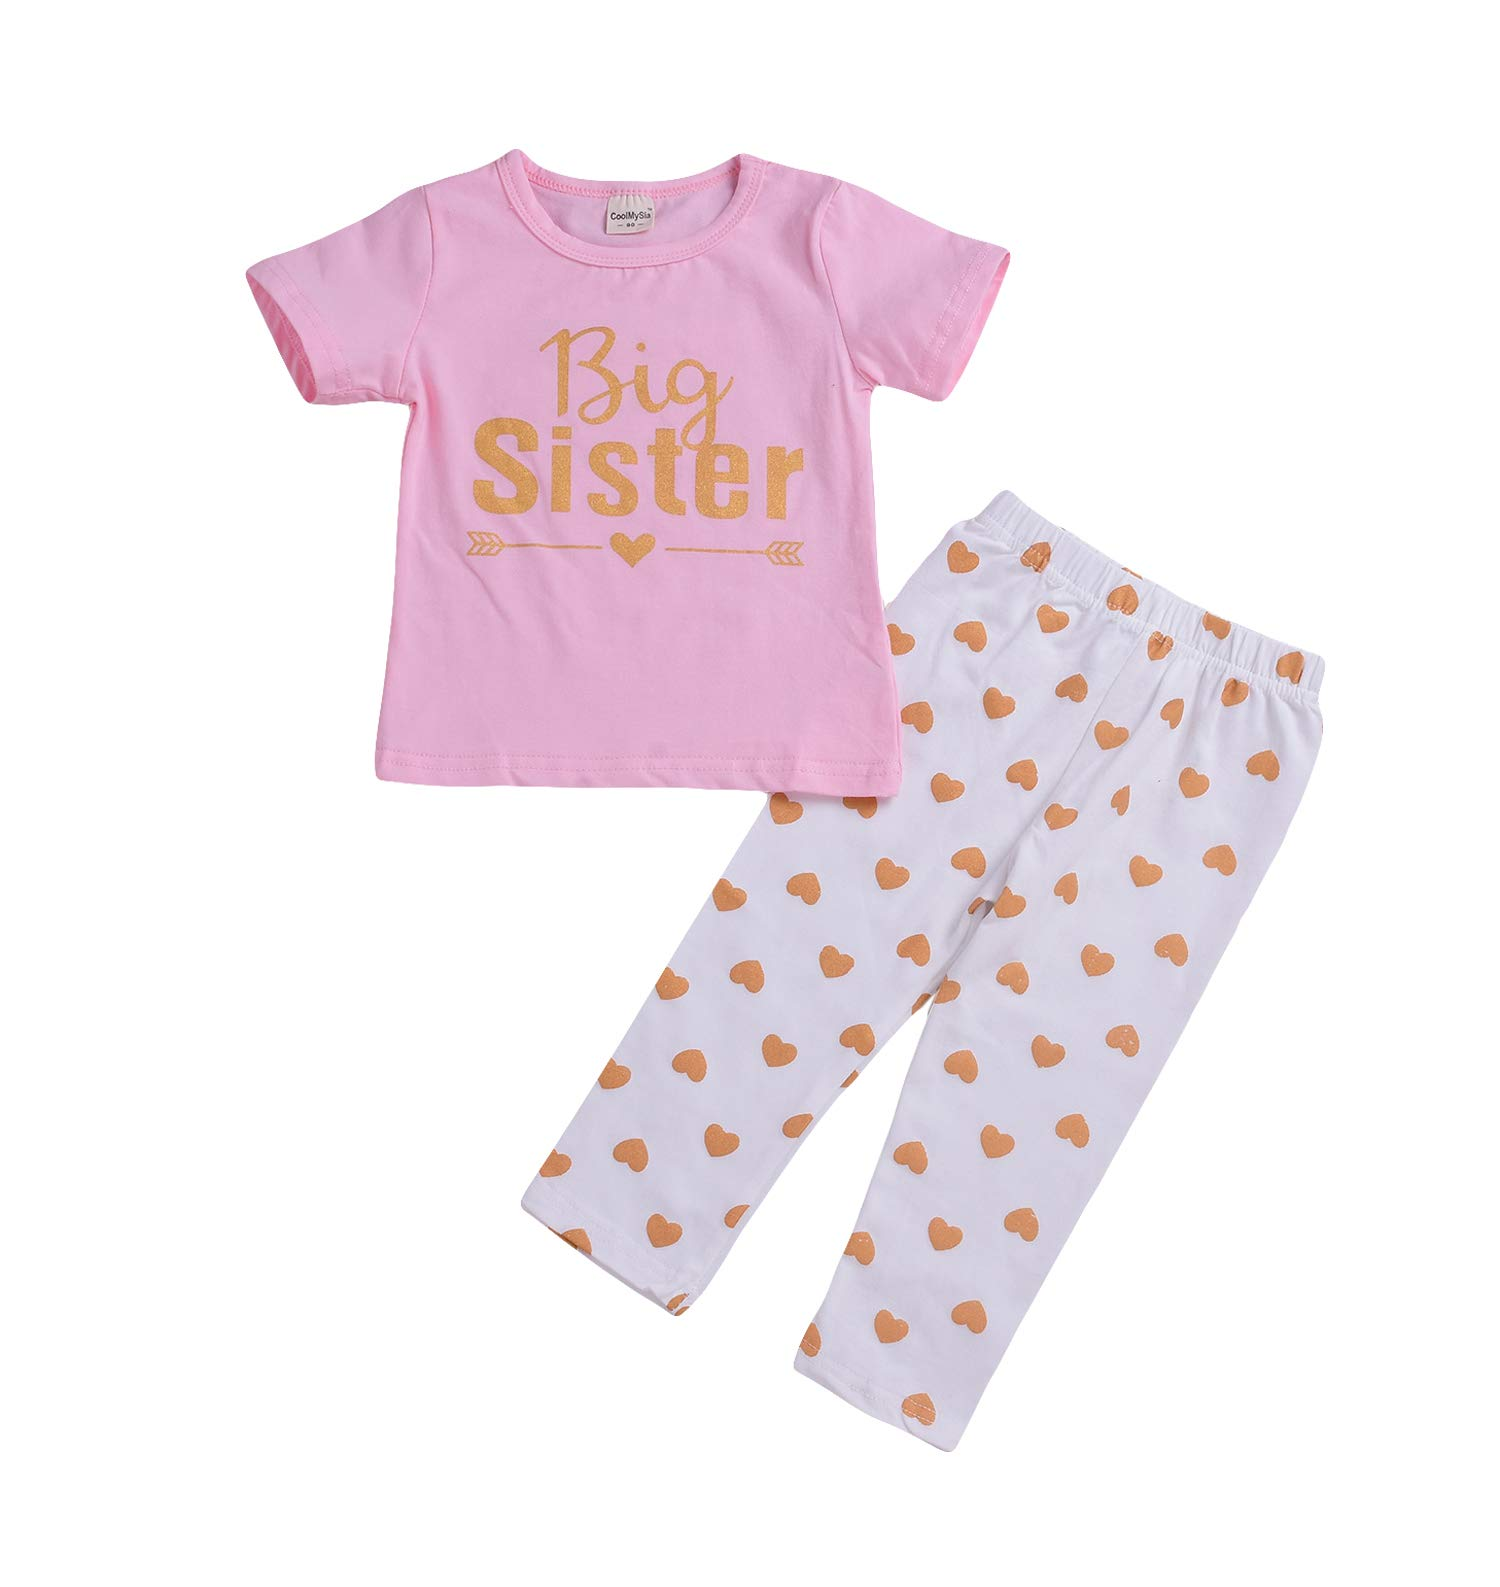 Baby Girls Family Matching Clothing Set Little Big Sister Romper Shirt Tops+Gold Heart Long Pants Outfit Set (Big Sister, 5T-6T)